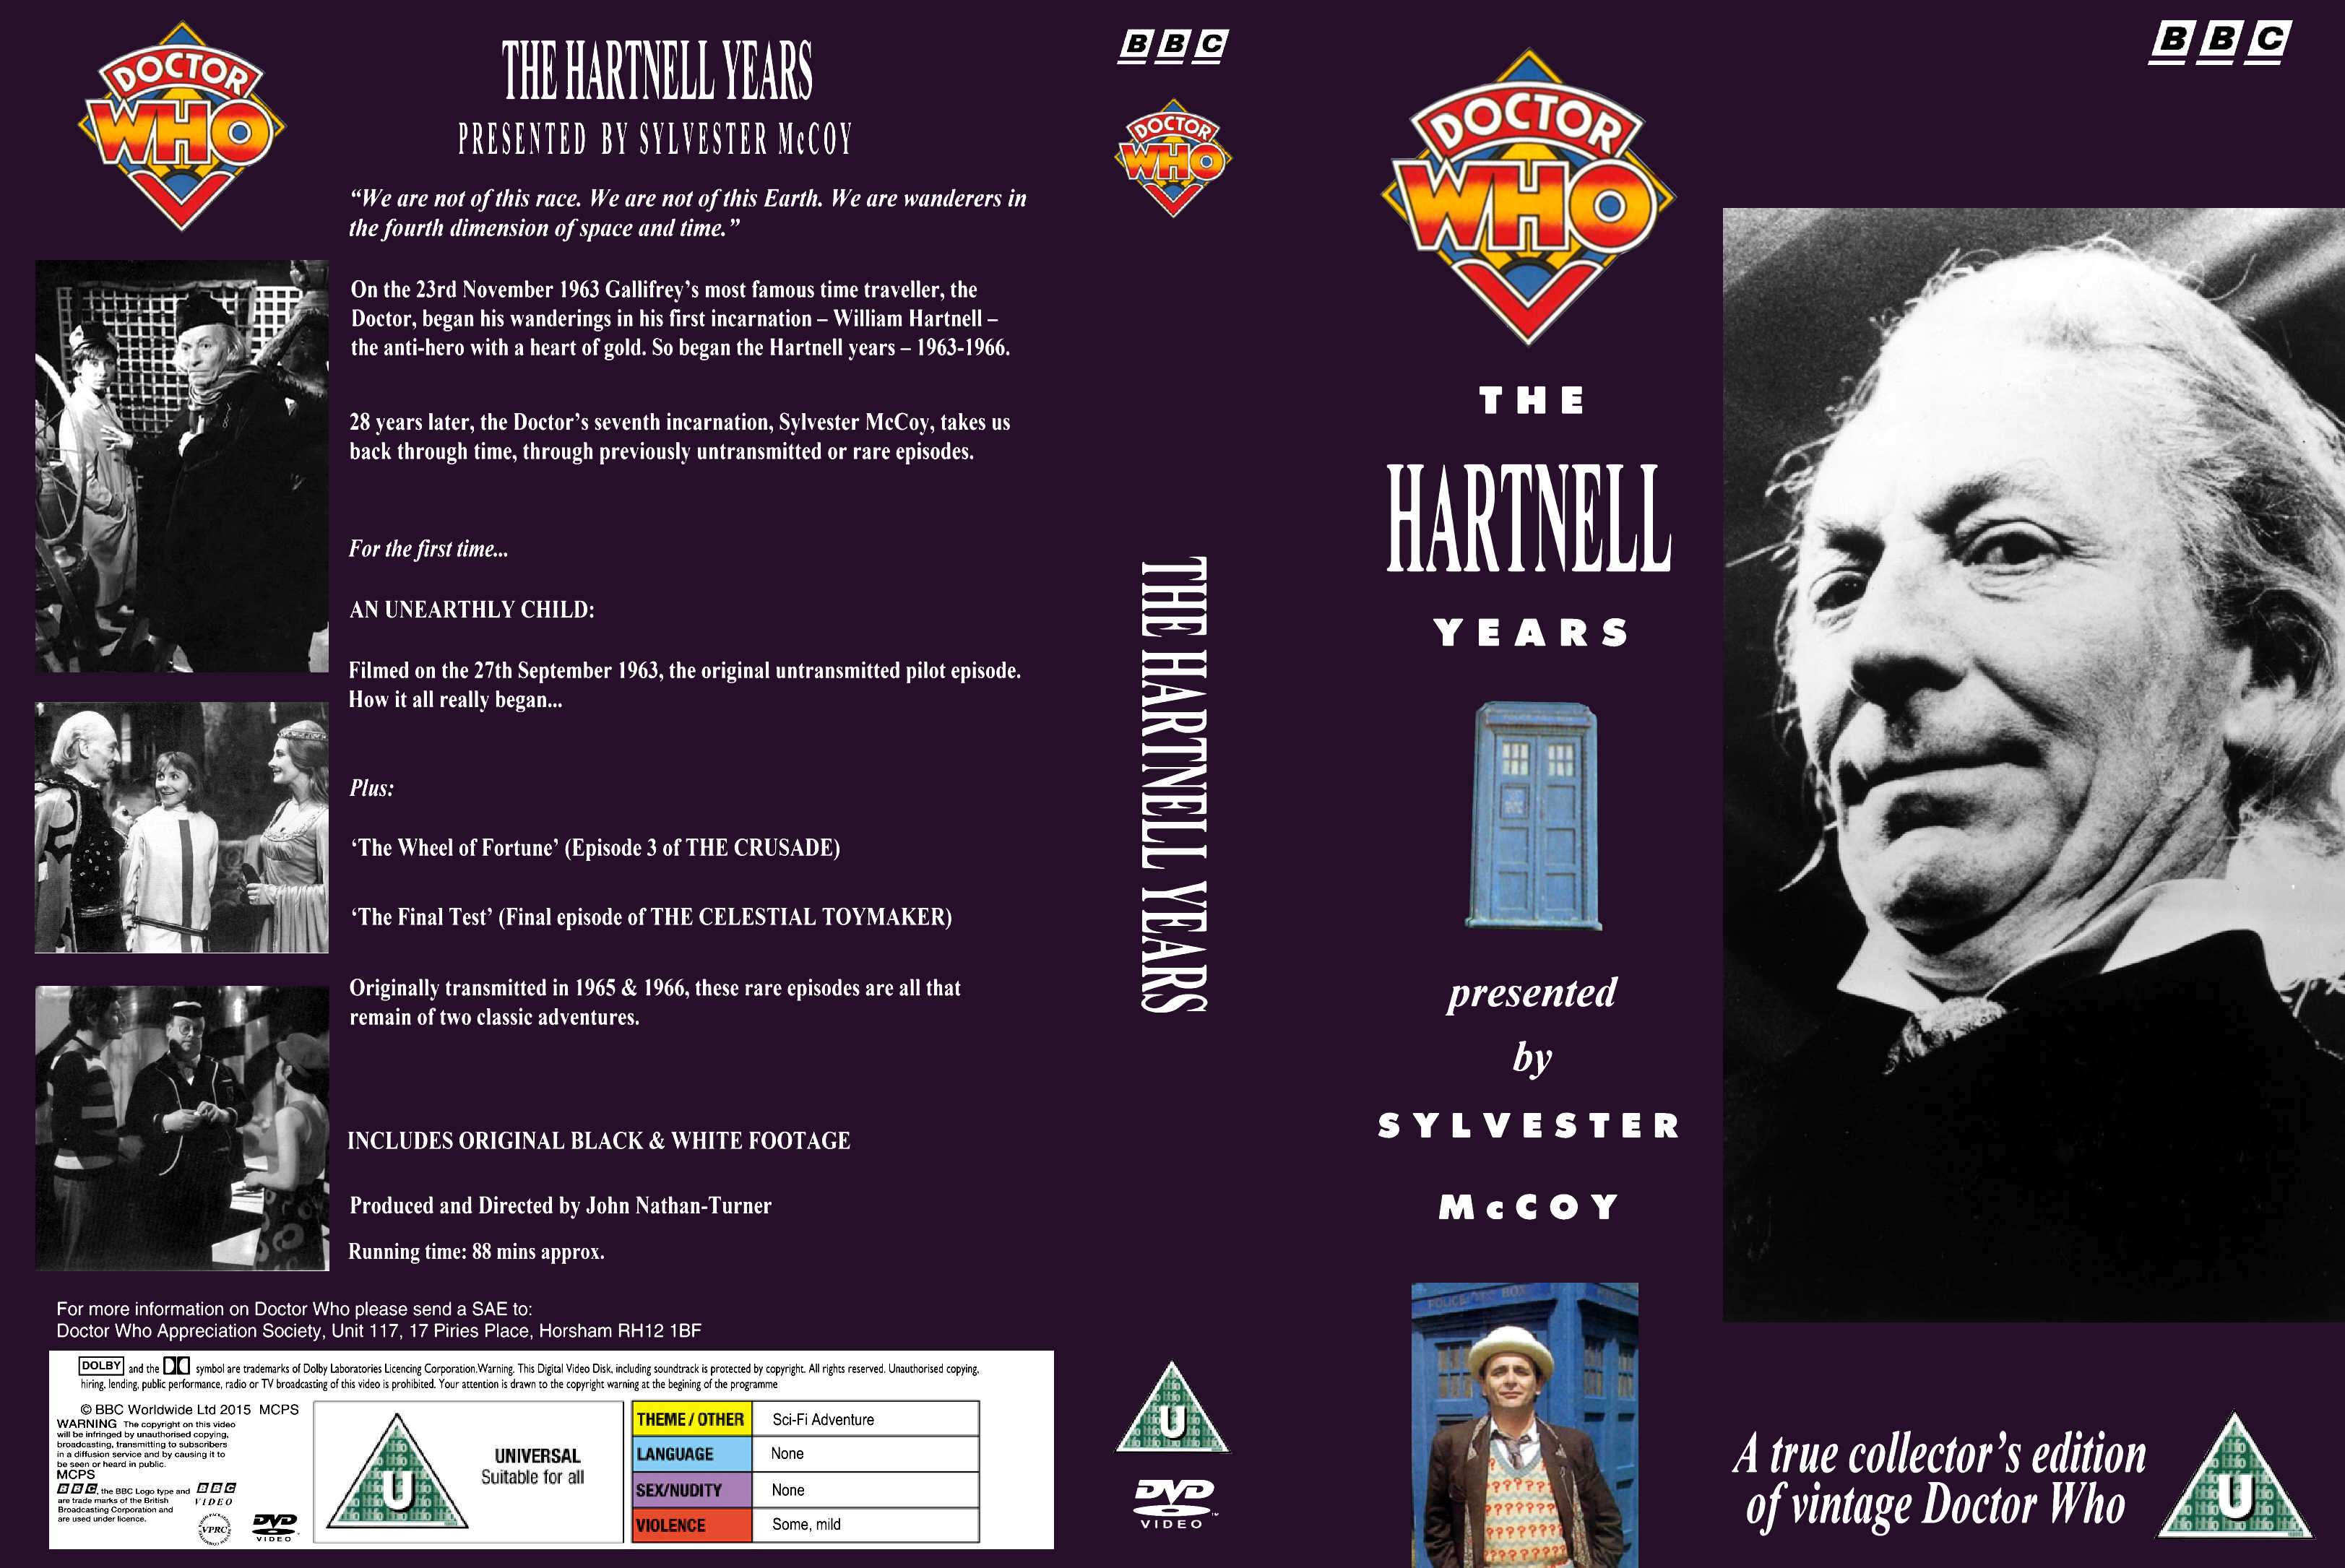 The Hartnell Years VHS